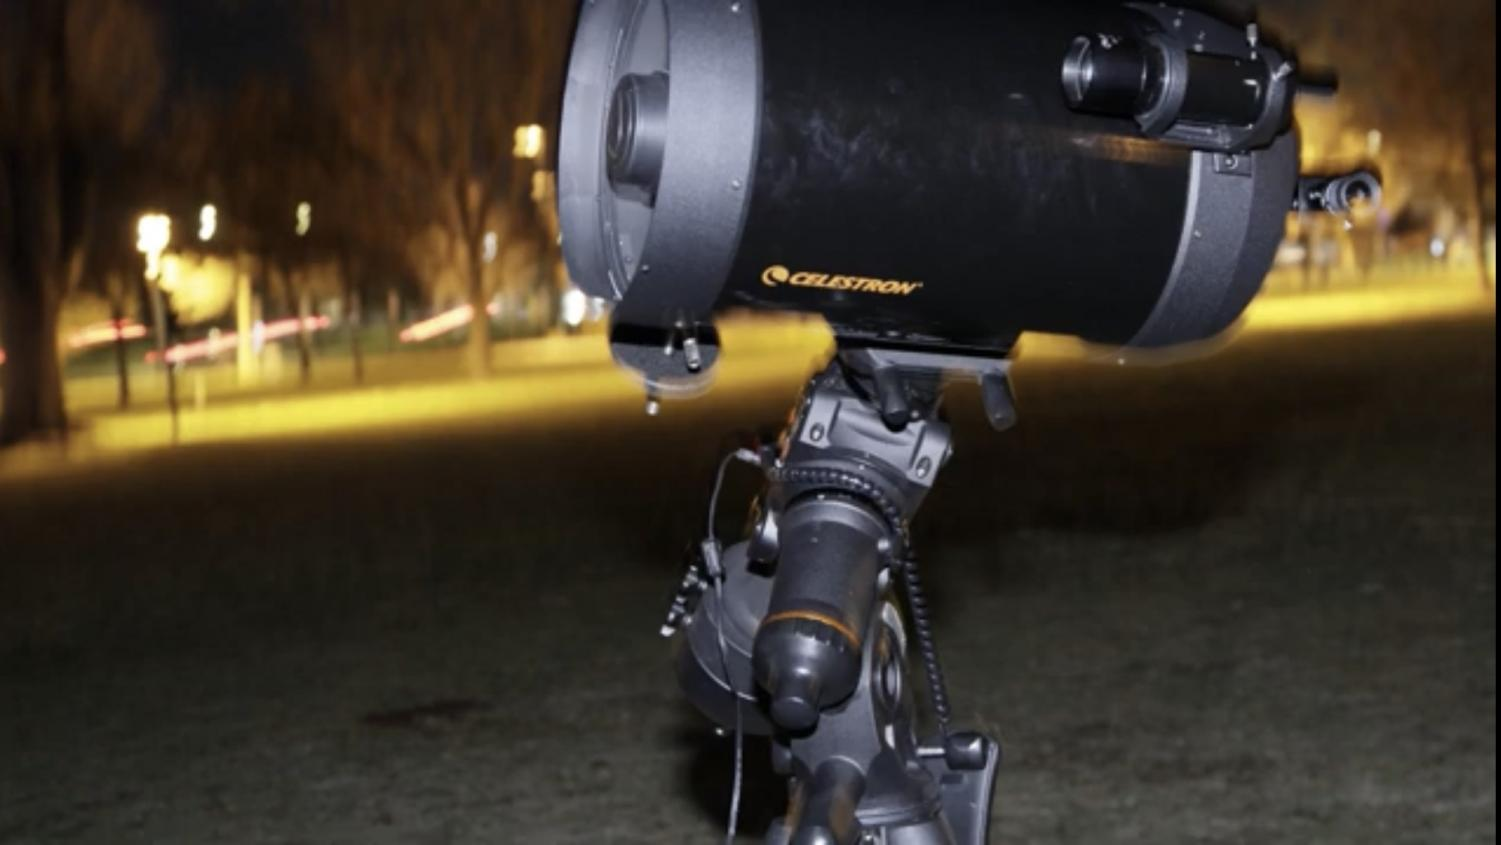 Telescope at the Astronomy Party at Arapahoe Community College in Littleton, Colo., on Oct. 25, 2019.